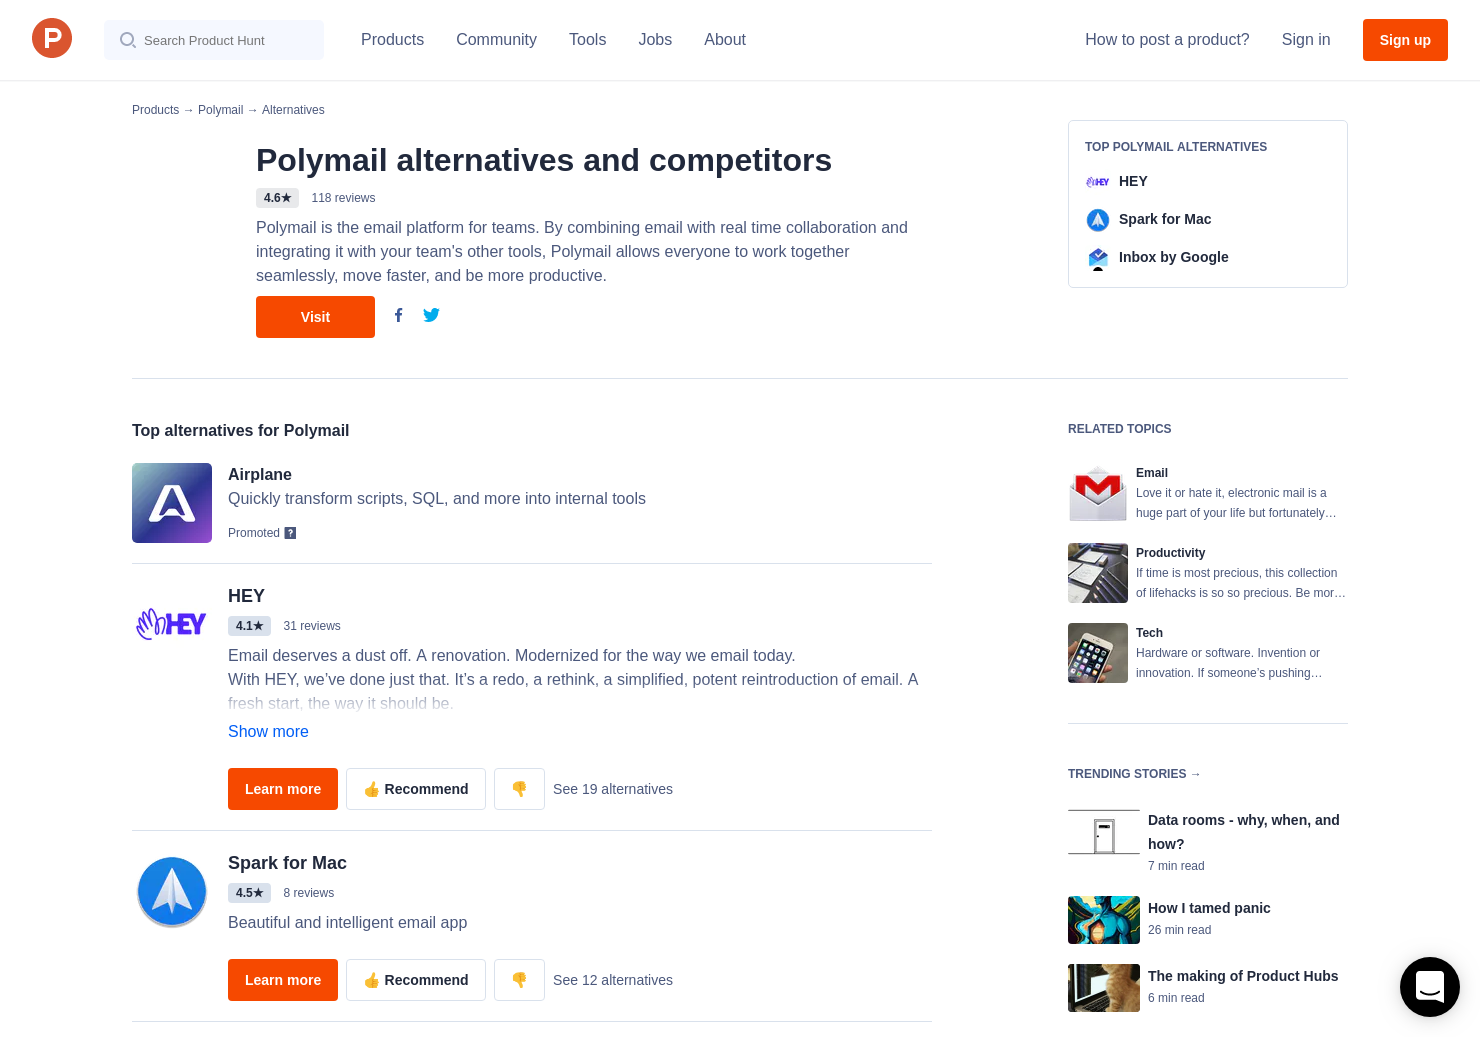 32 Alternatives to Polymail   Product Hunt